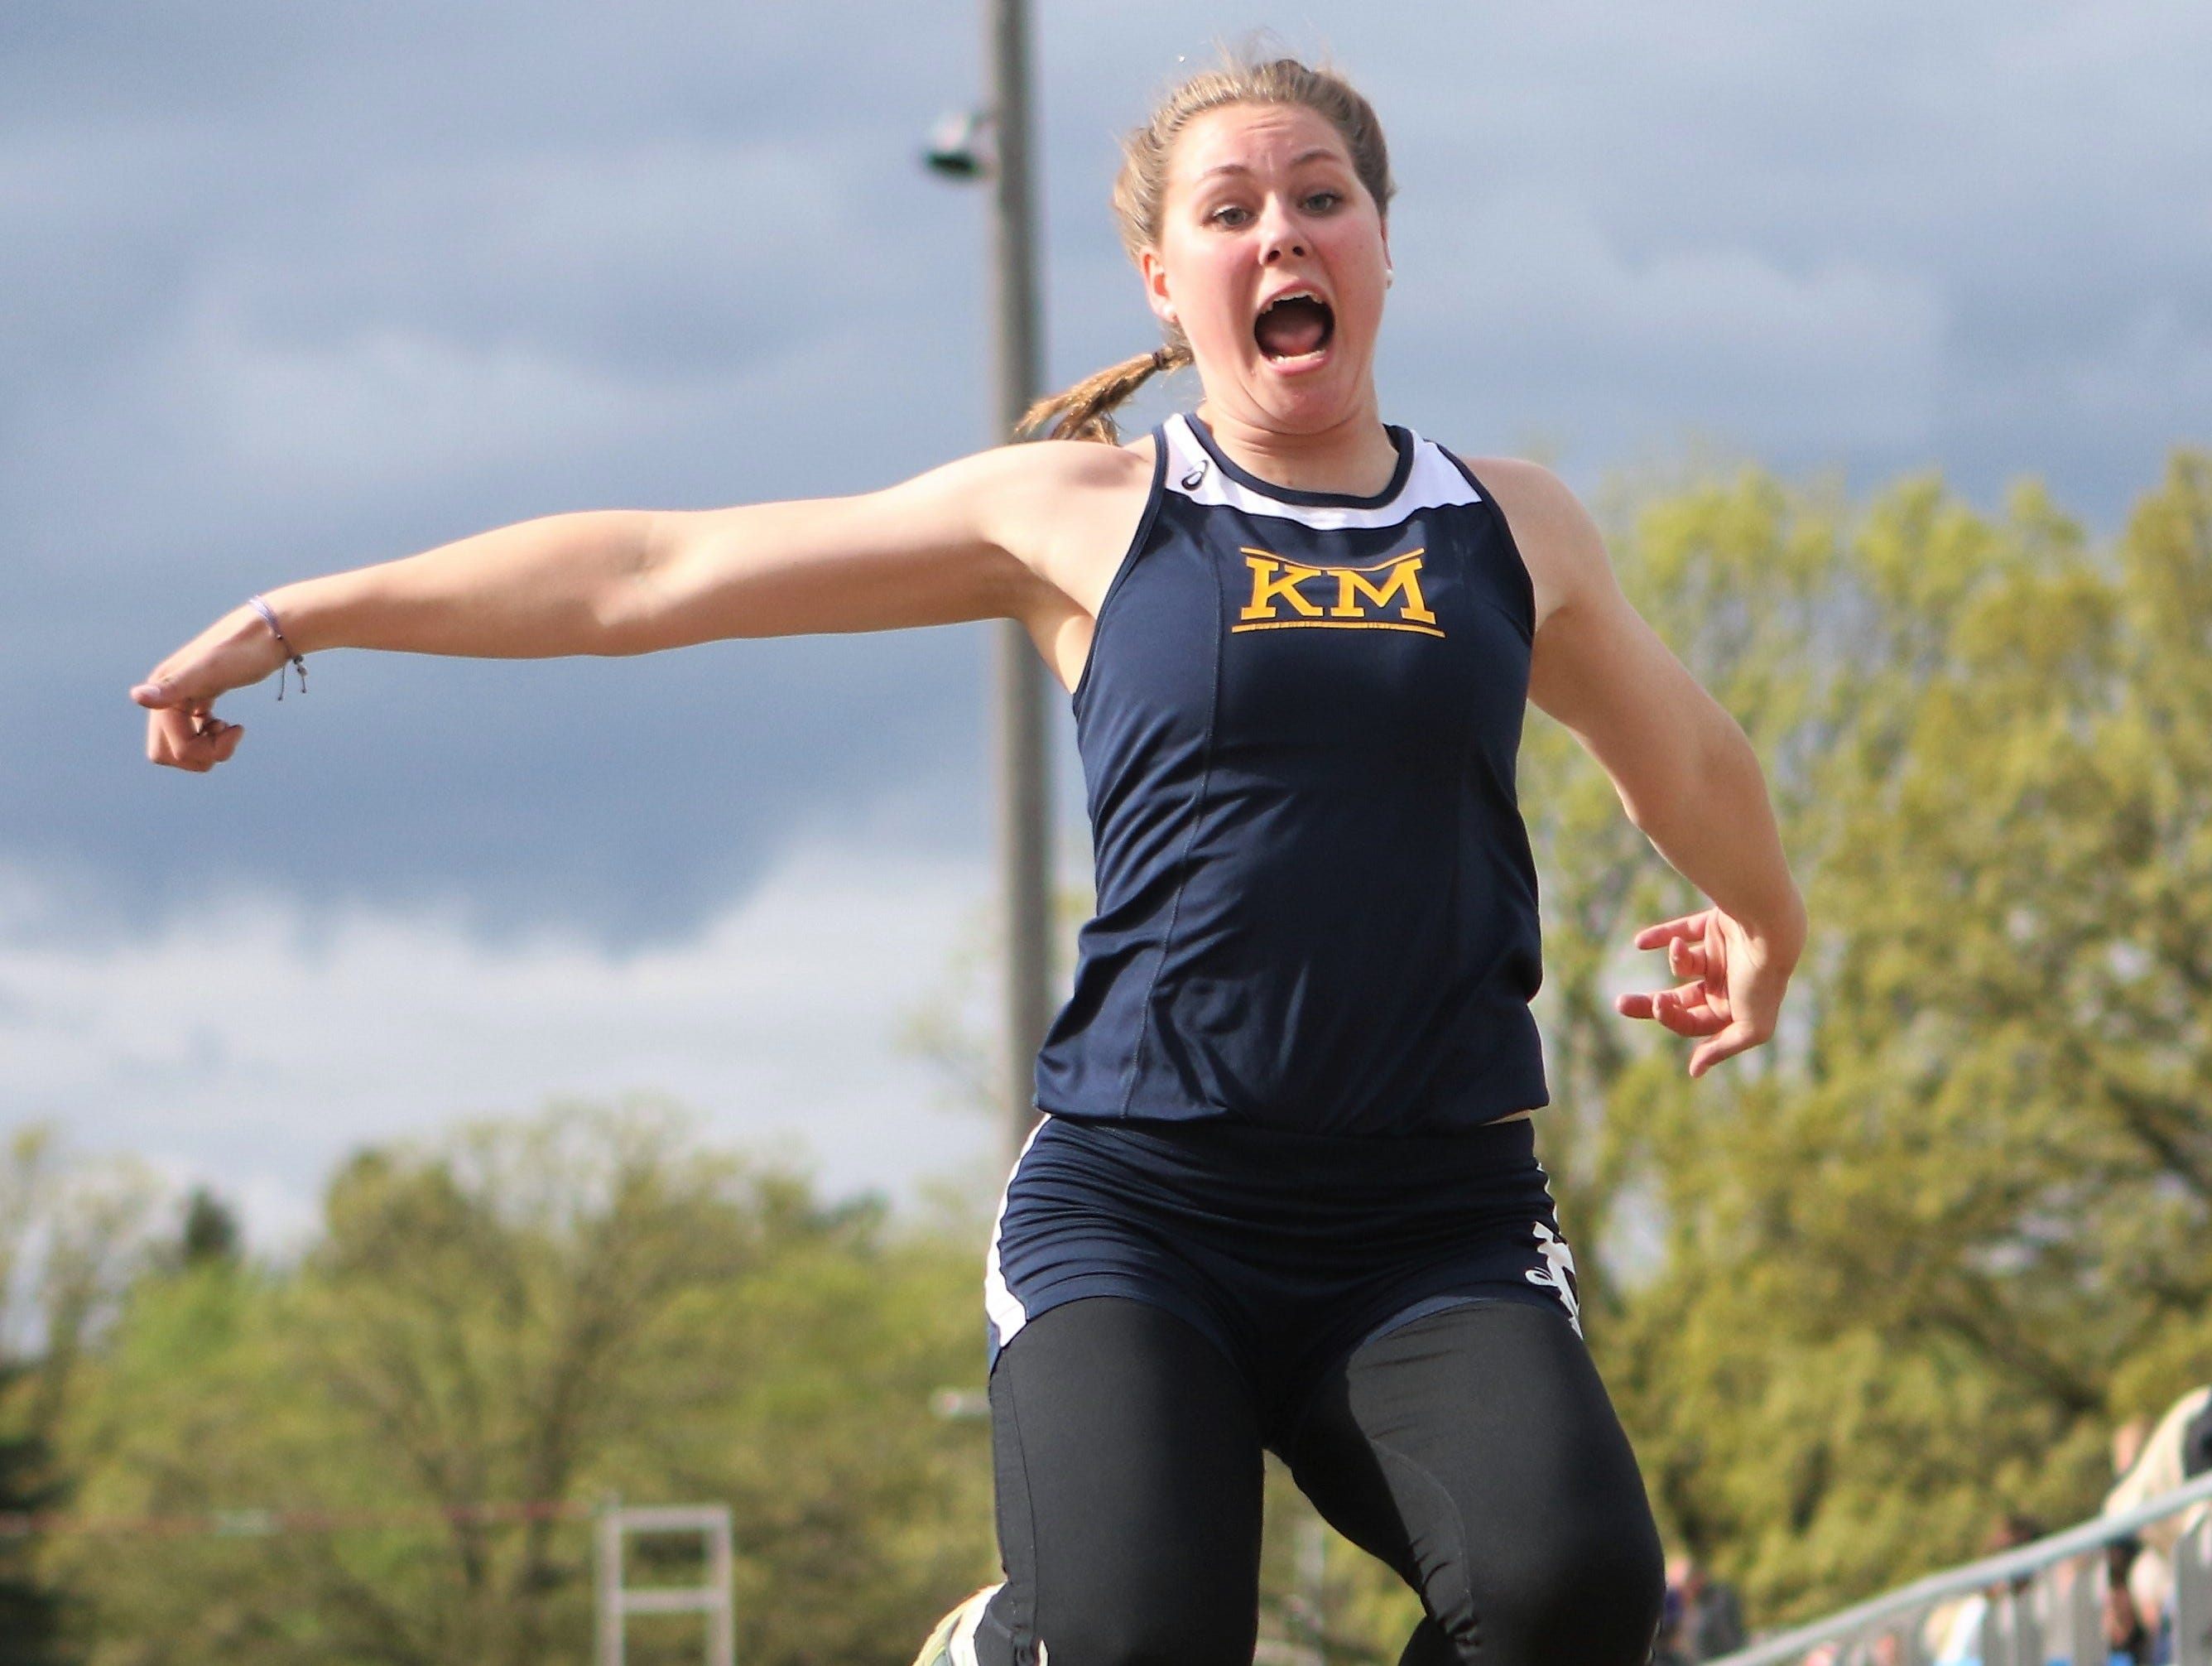 Kettle Moraine's Emily Stuart competes in the long jump at the Kettle Moraine regional on May 20, 2019.